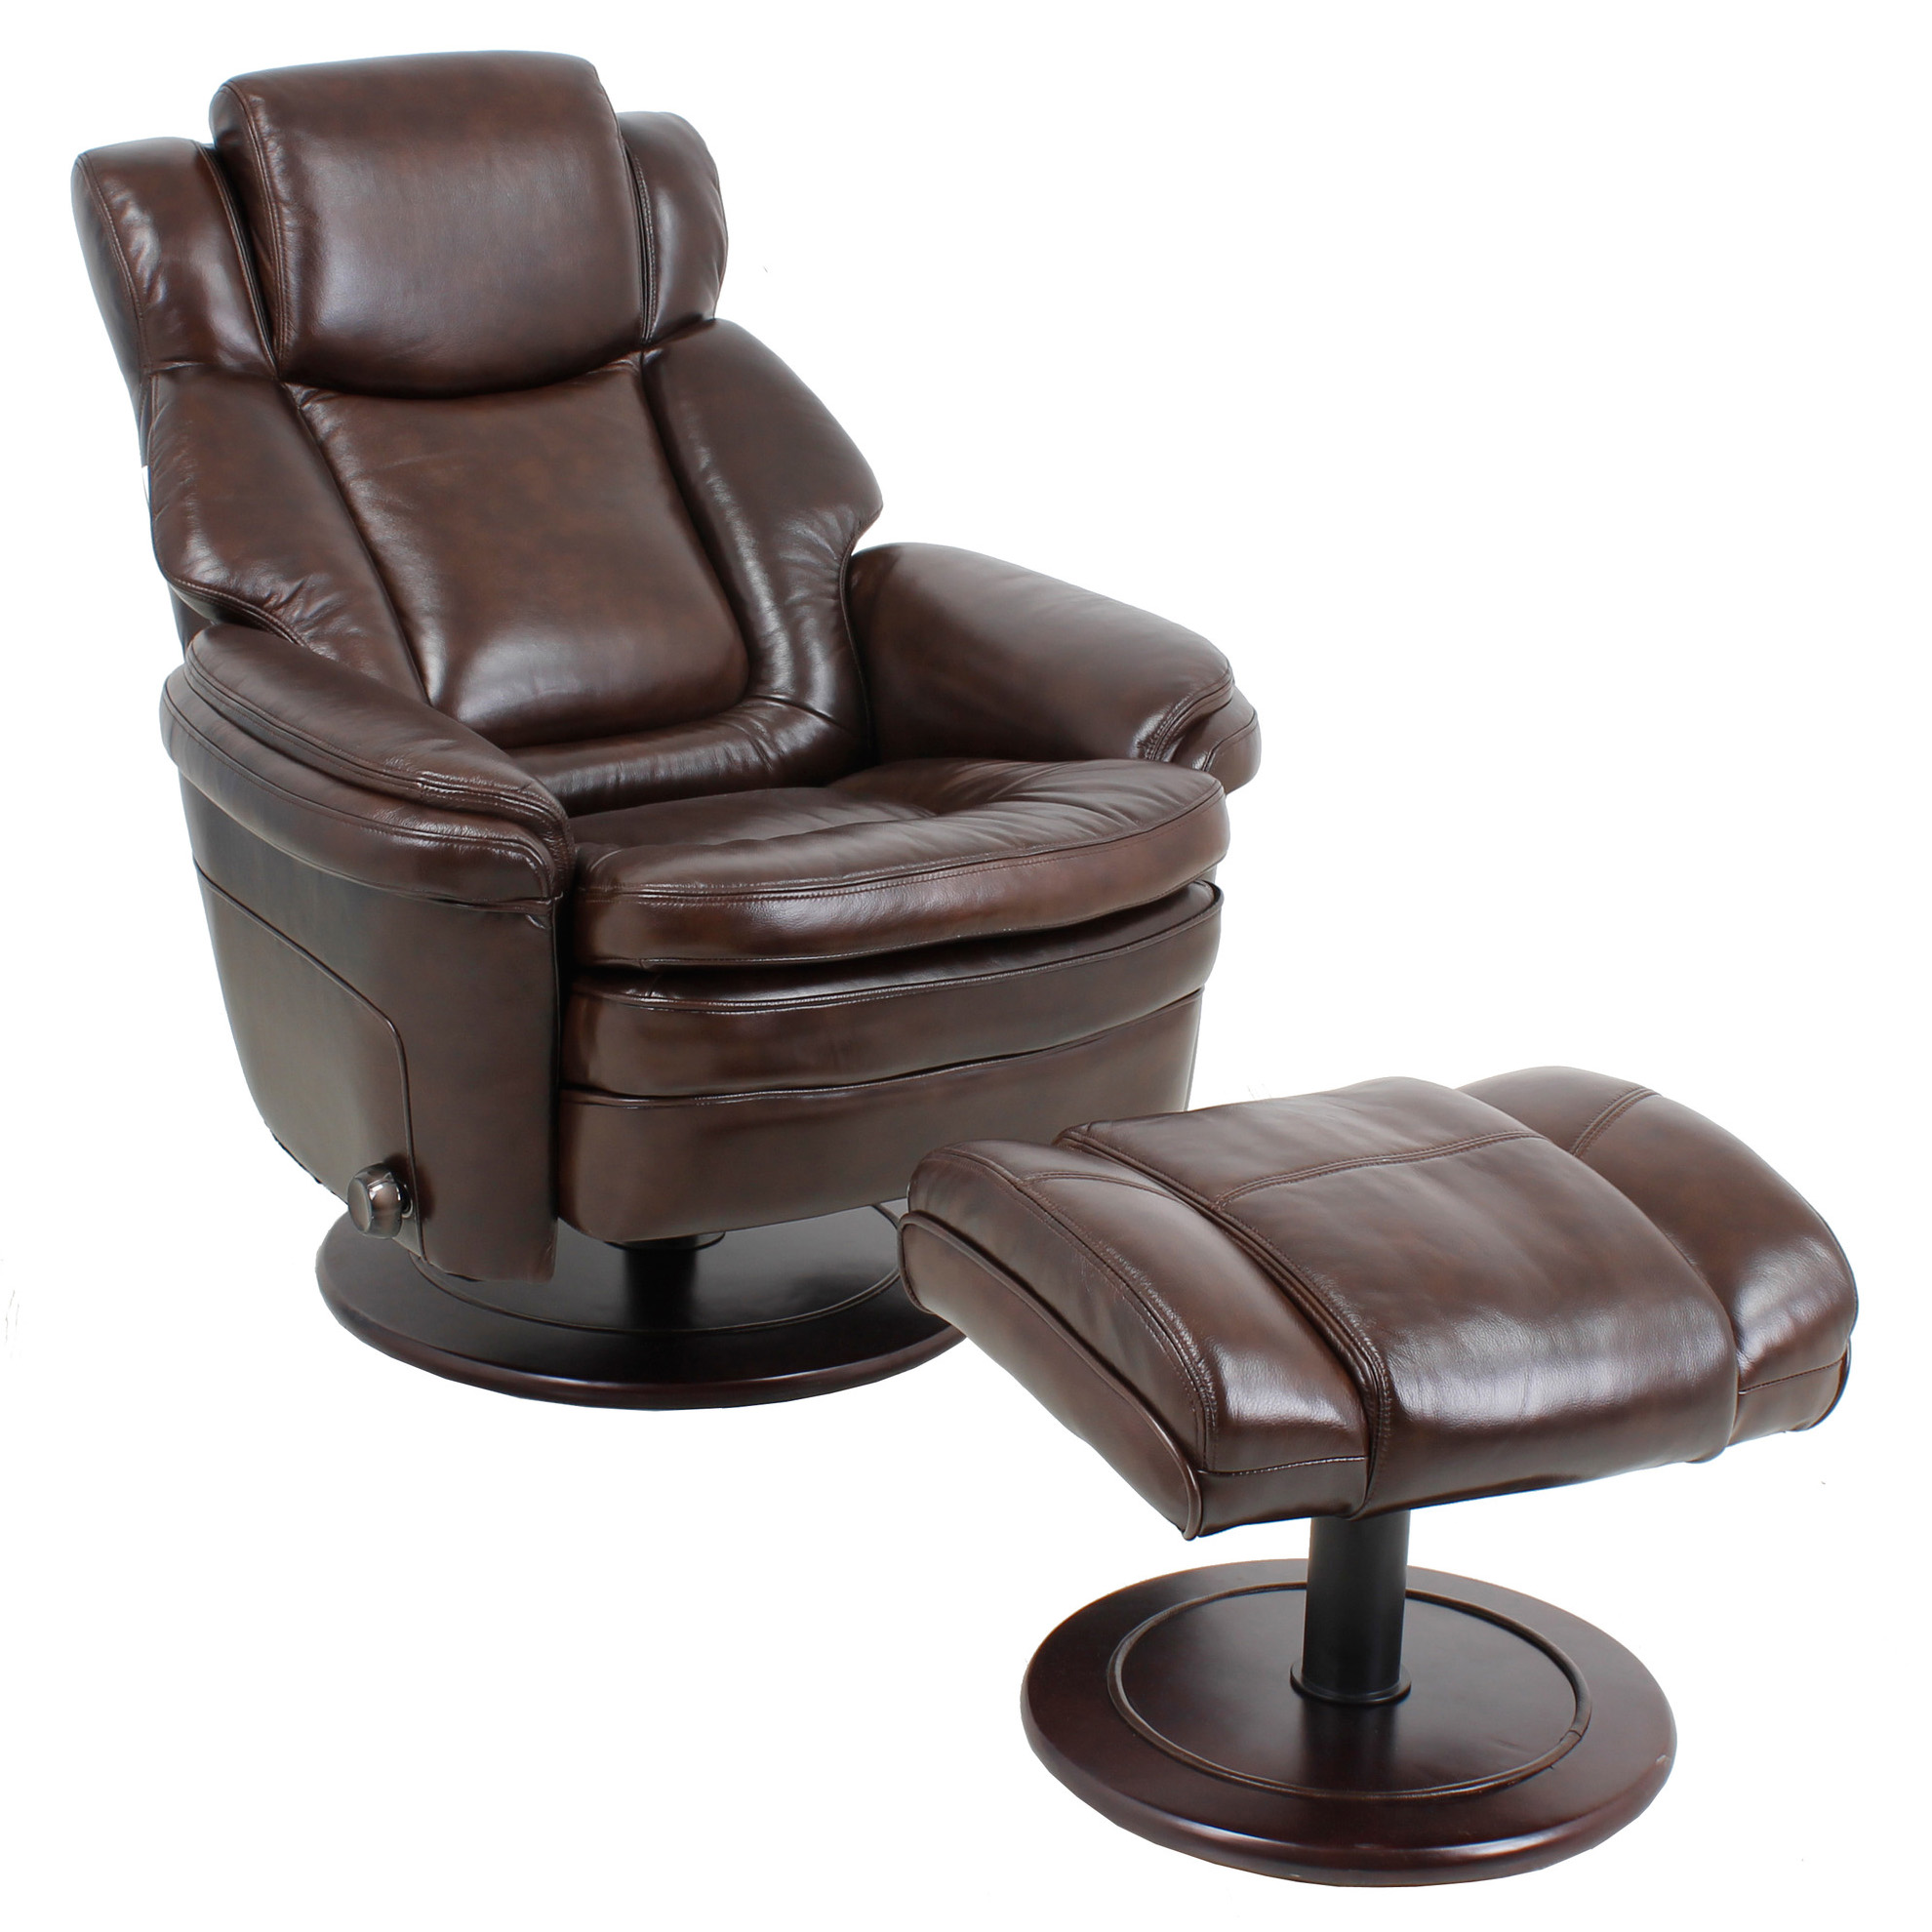 barcalounger eclipse ii recliner chair and ottoman